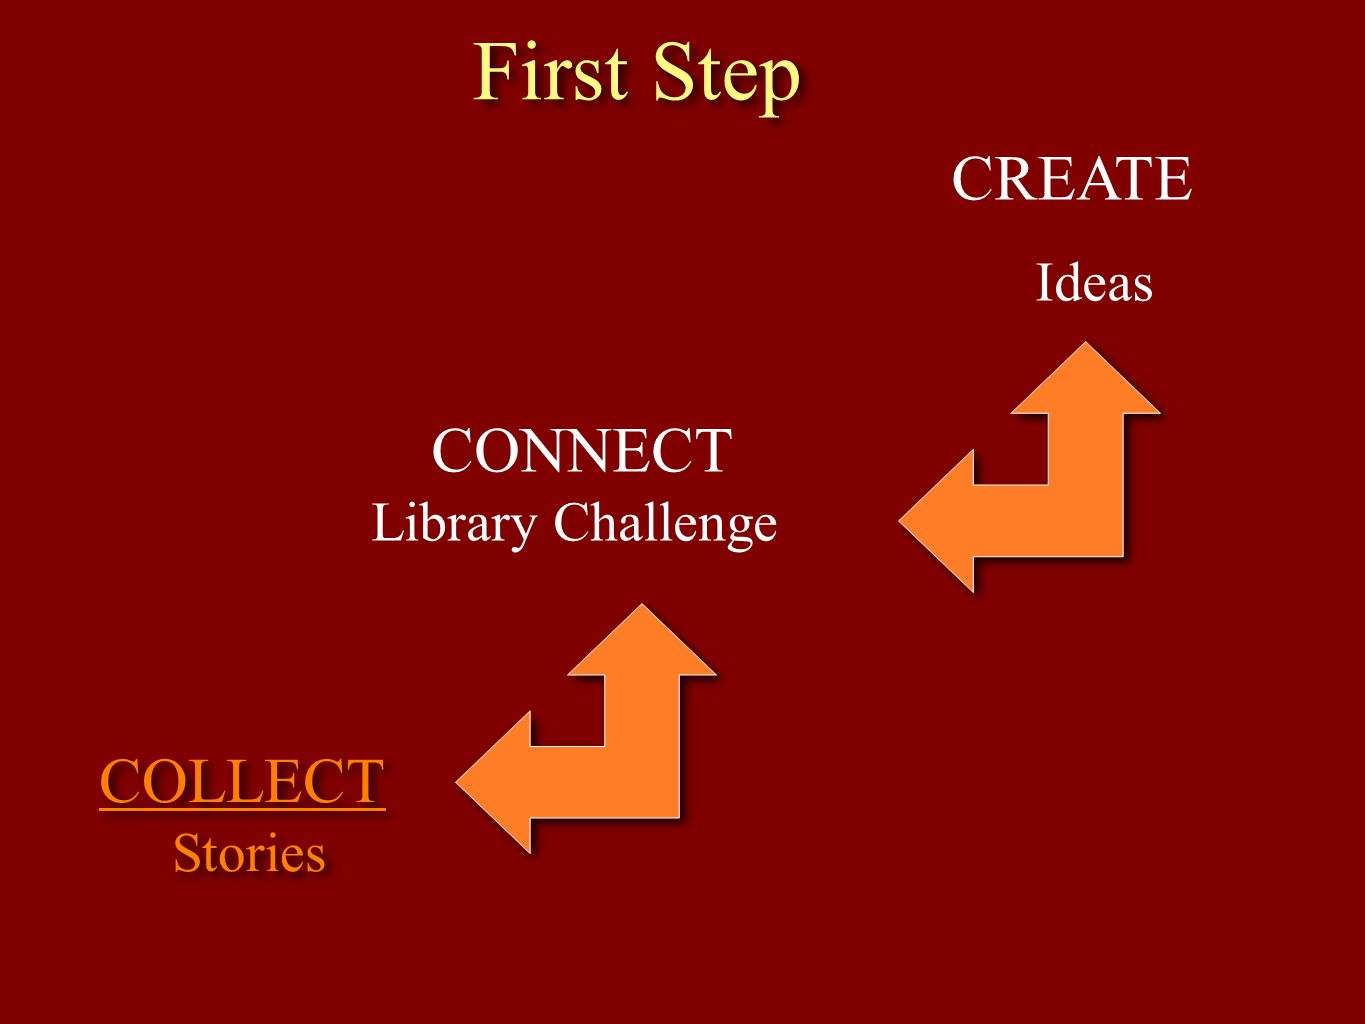 First Step CREATE CONNECT COLLECT Ideas Library Challenge Stories